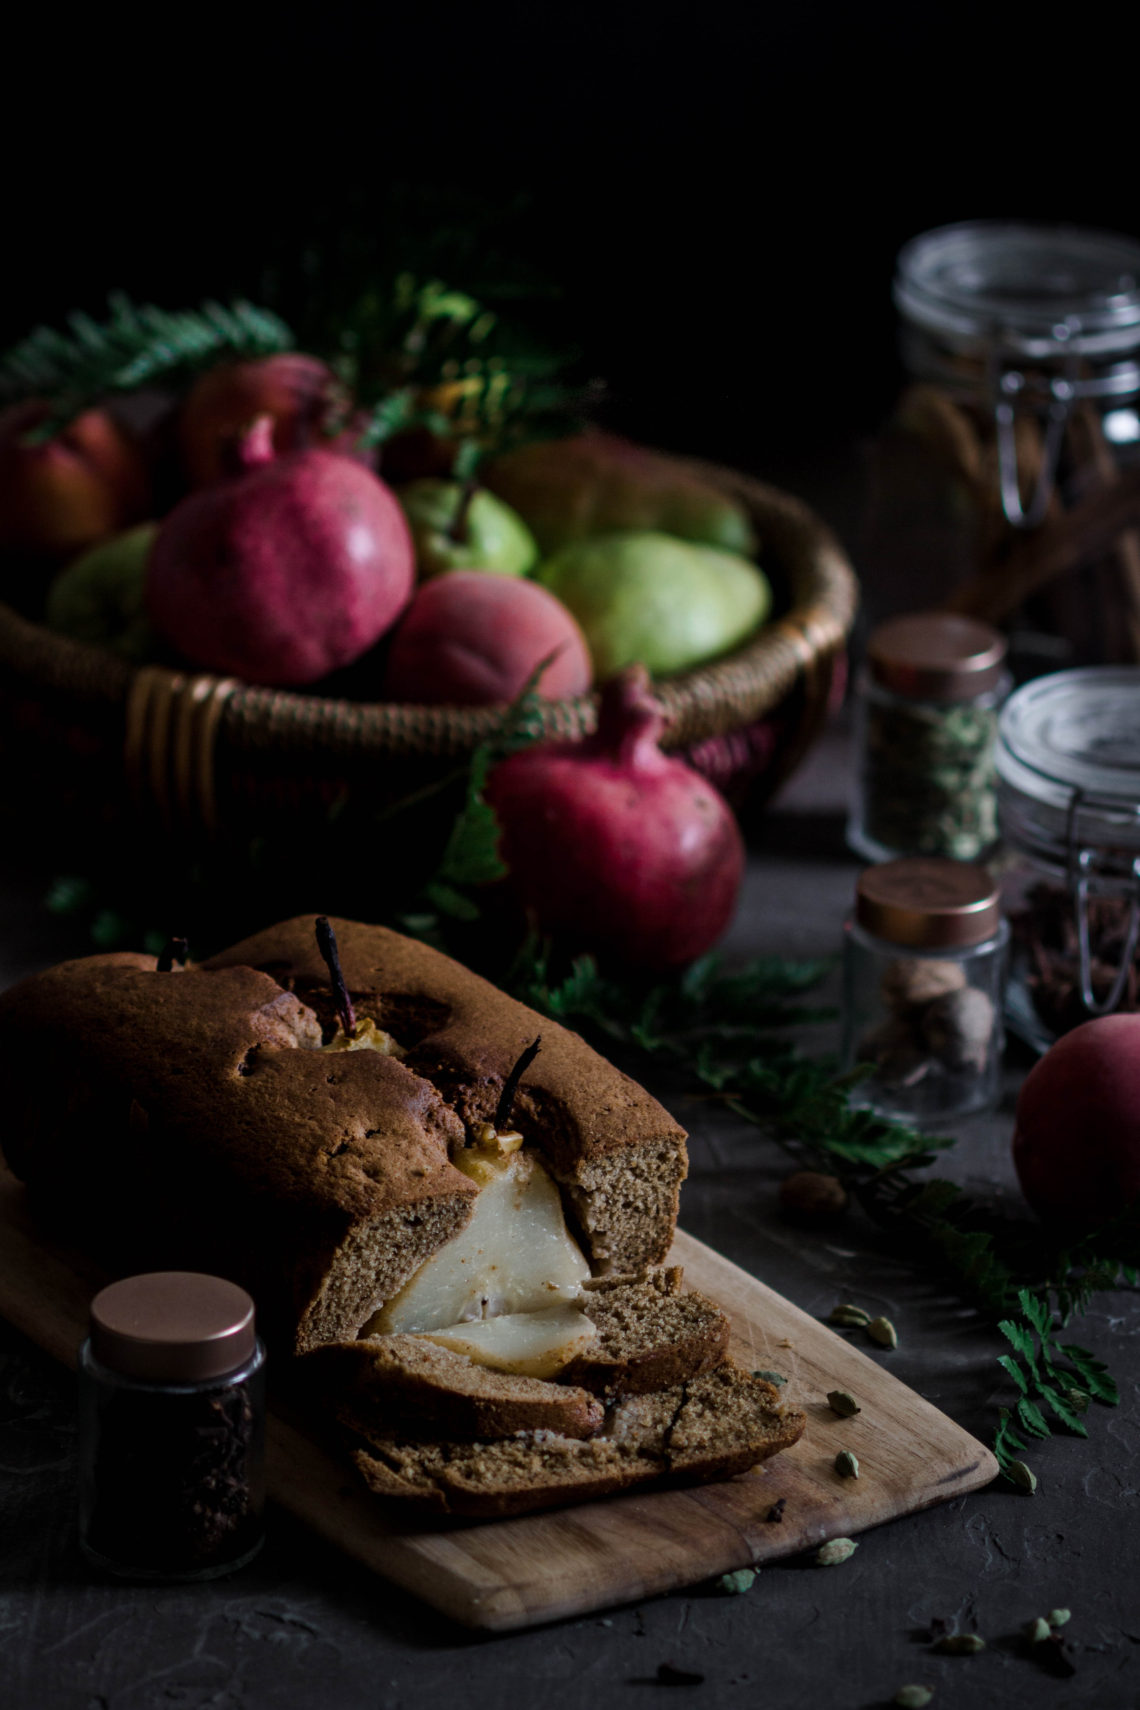 Poached Pear and Spice Loaf from Boiled Wheat Blog by Kristen McSorley Bozeman Montana Food Photographer